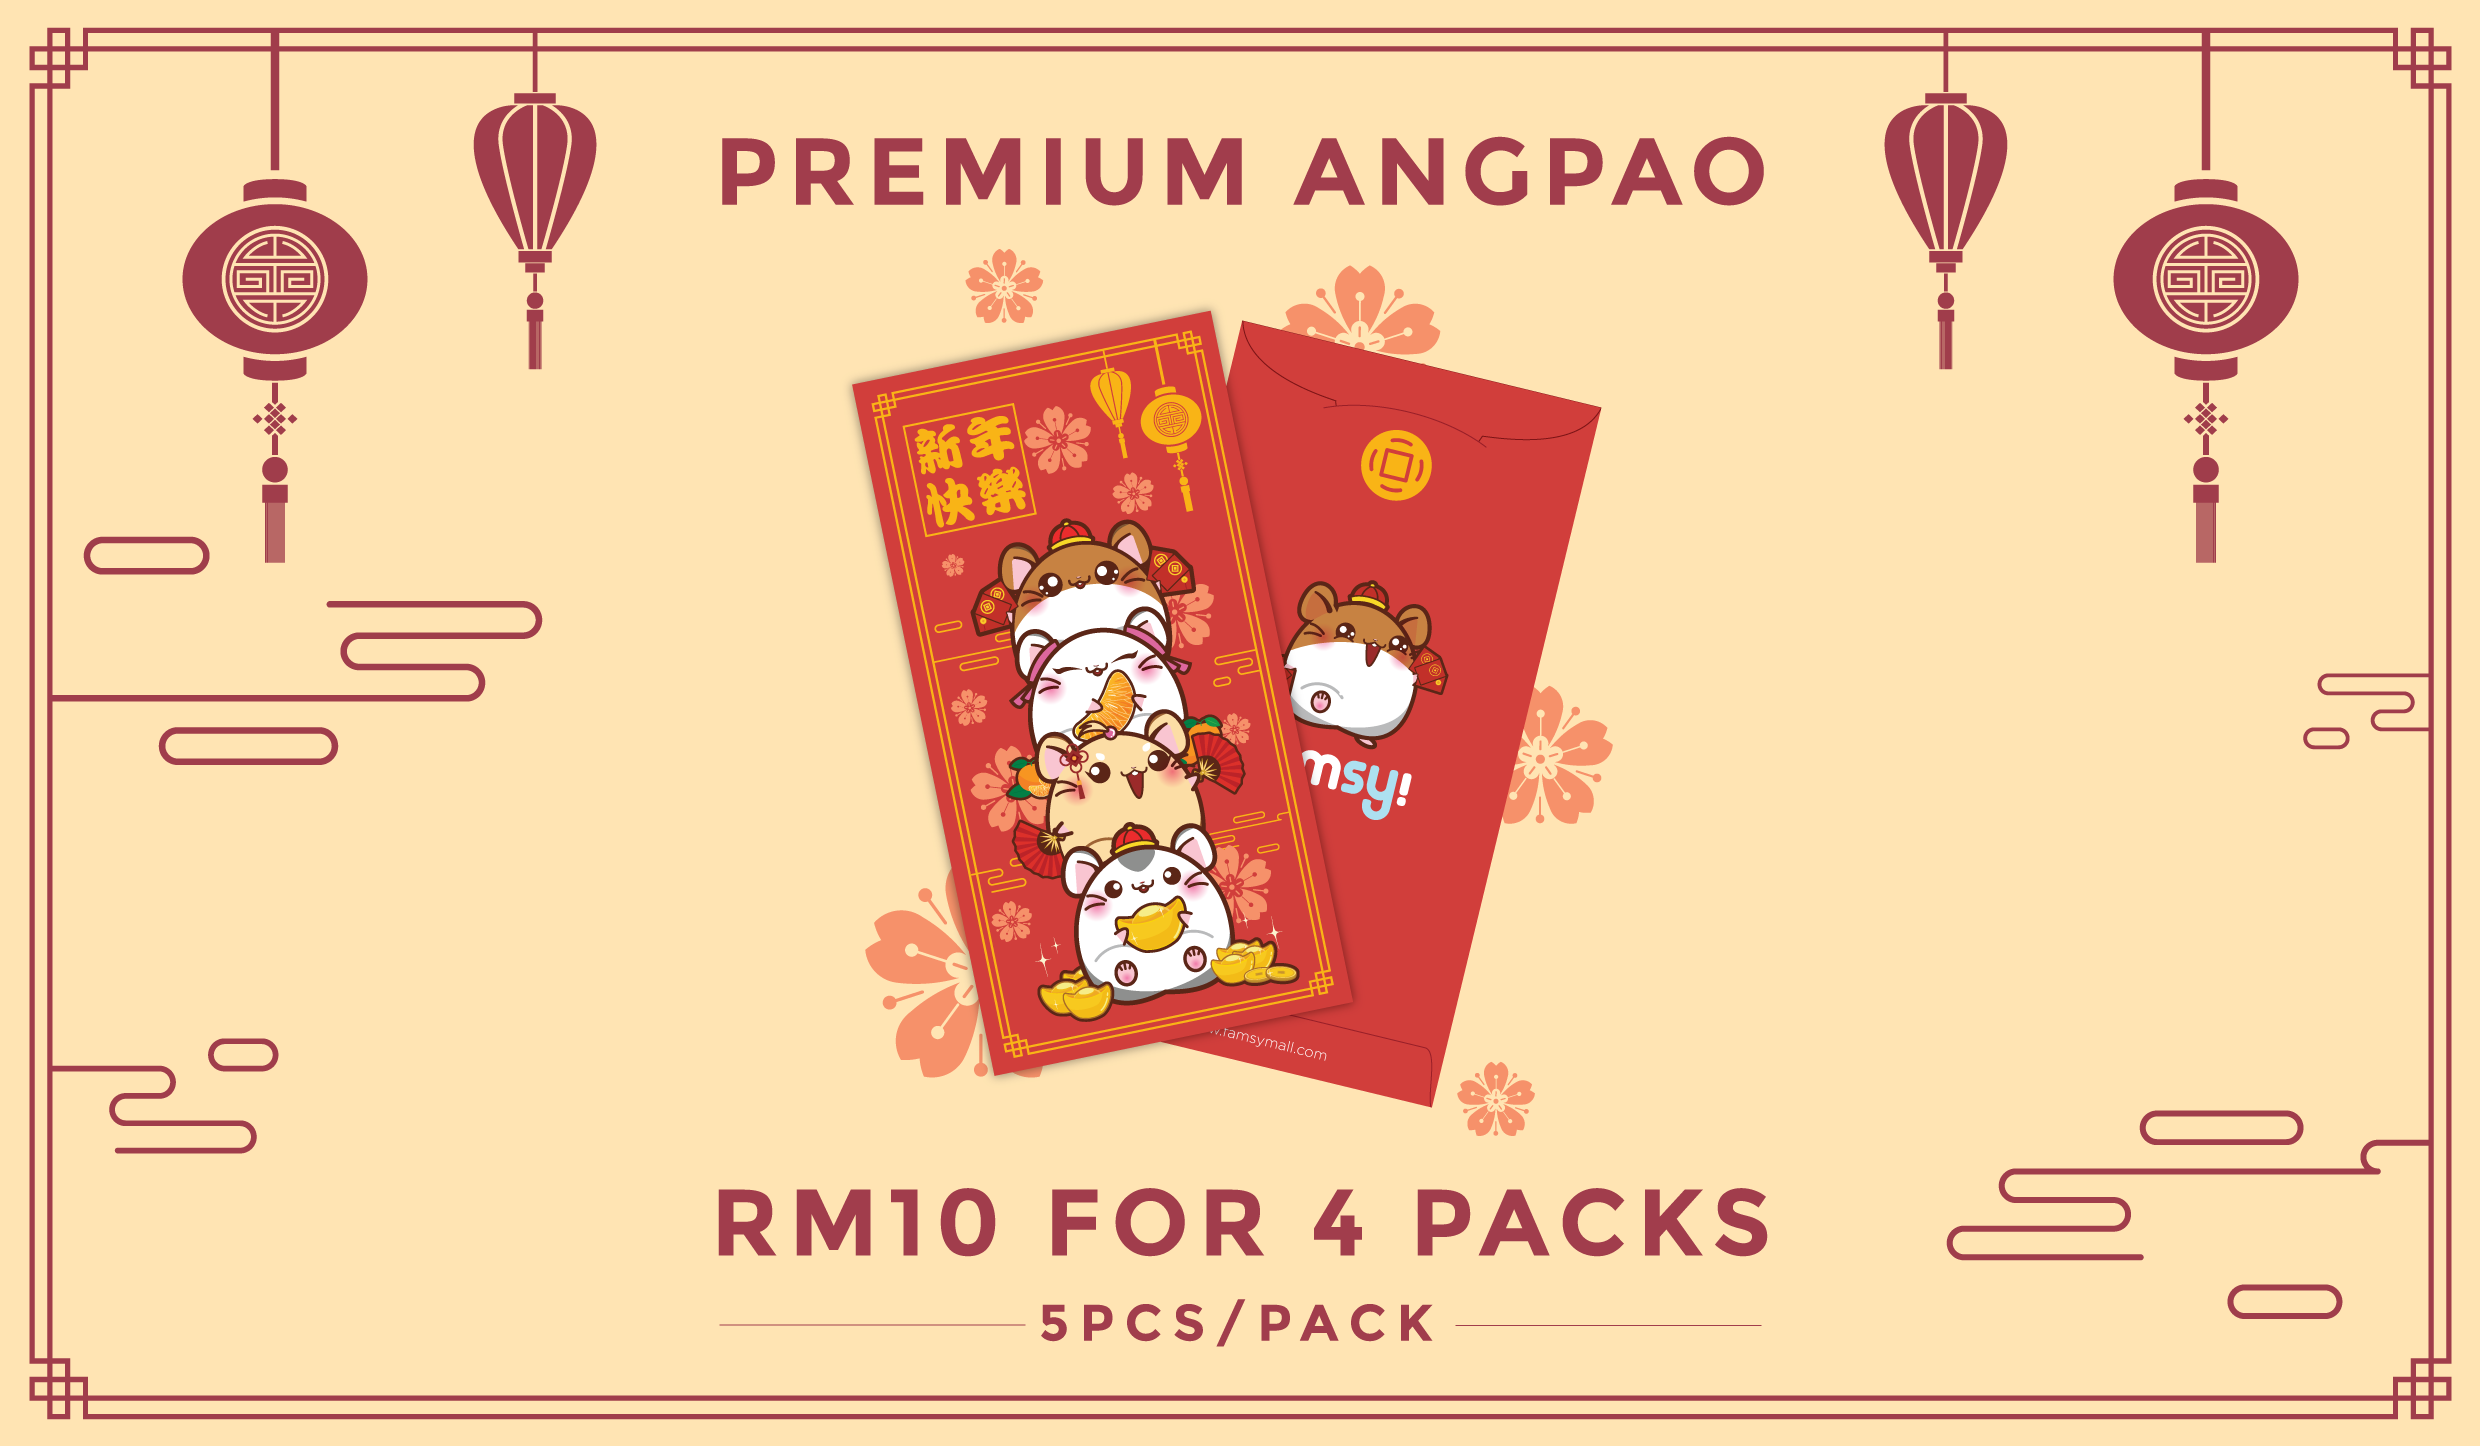 ANGPAO-BANNER-WEBSITE-SLIDER-2.png